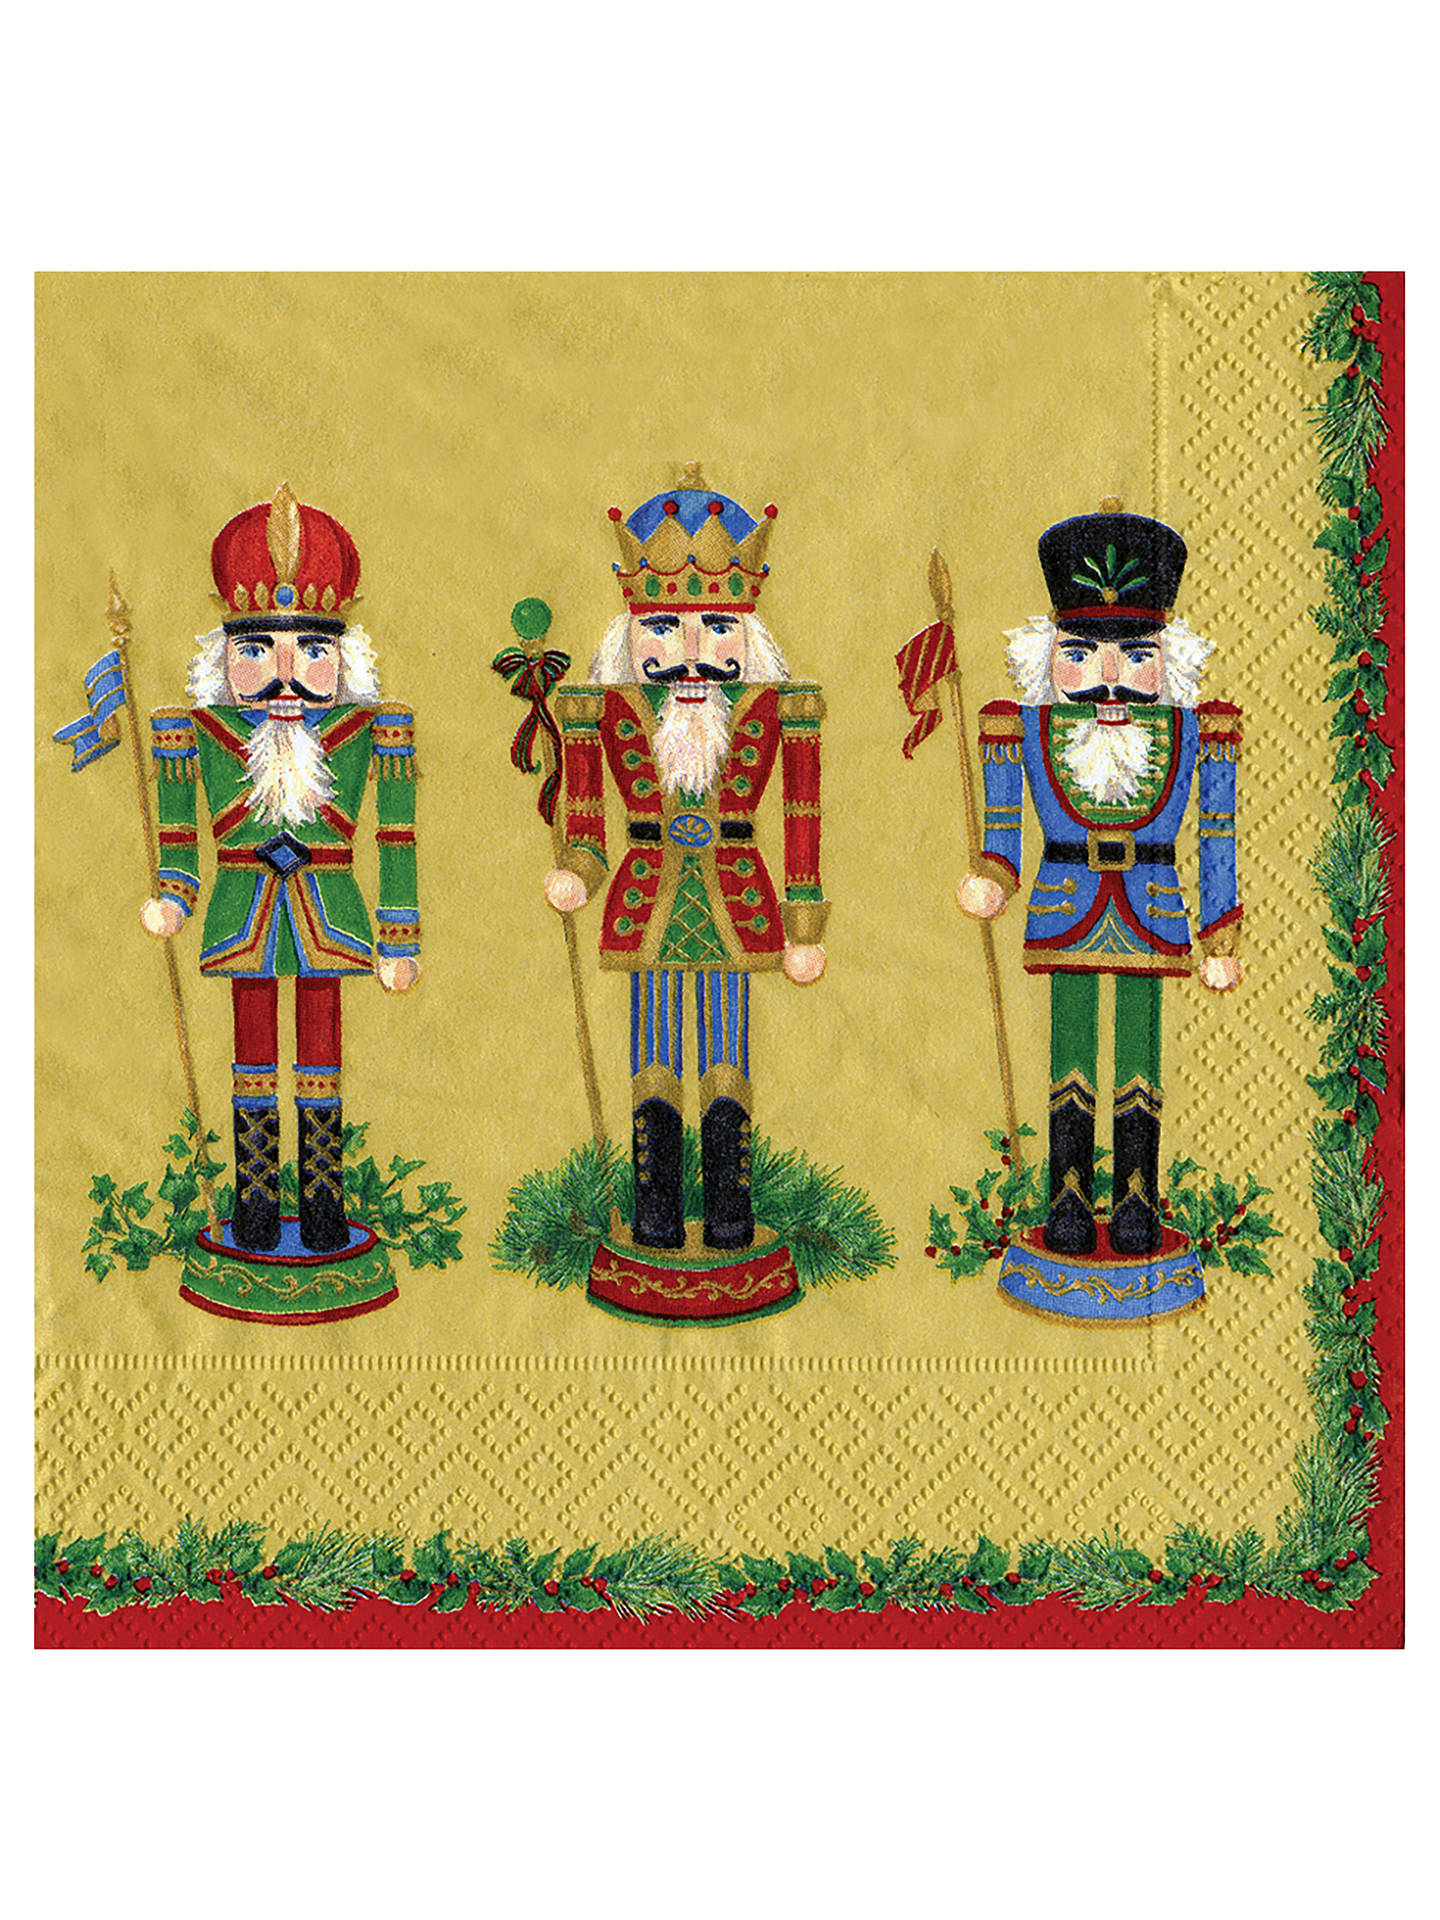 Buy Caspari Nutcracker Paper Lunch Napkin, Pack of 20 Online at johnlewis.com